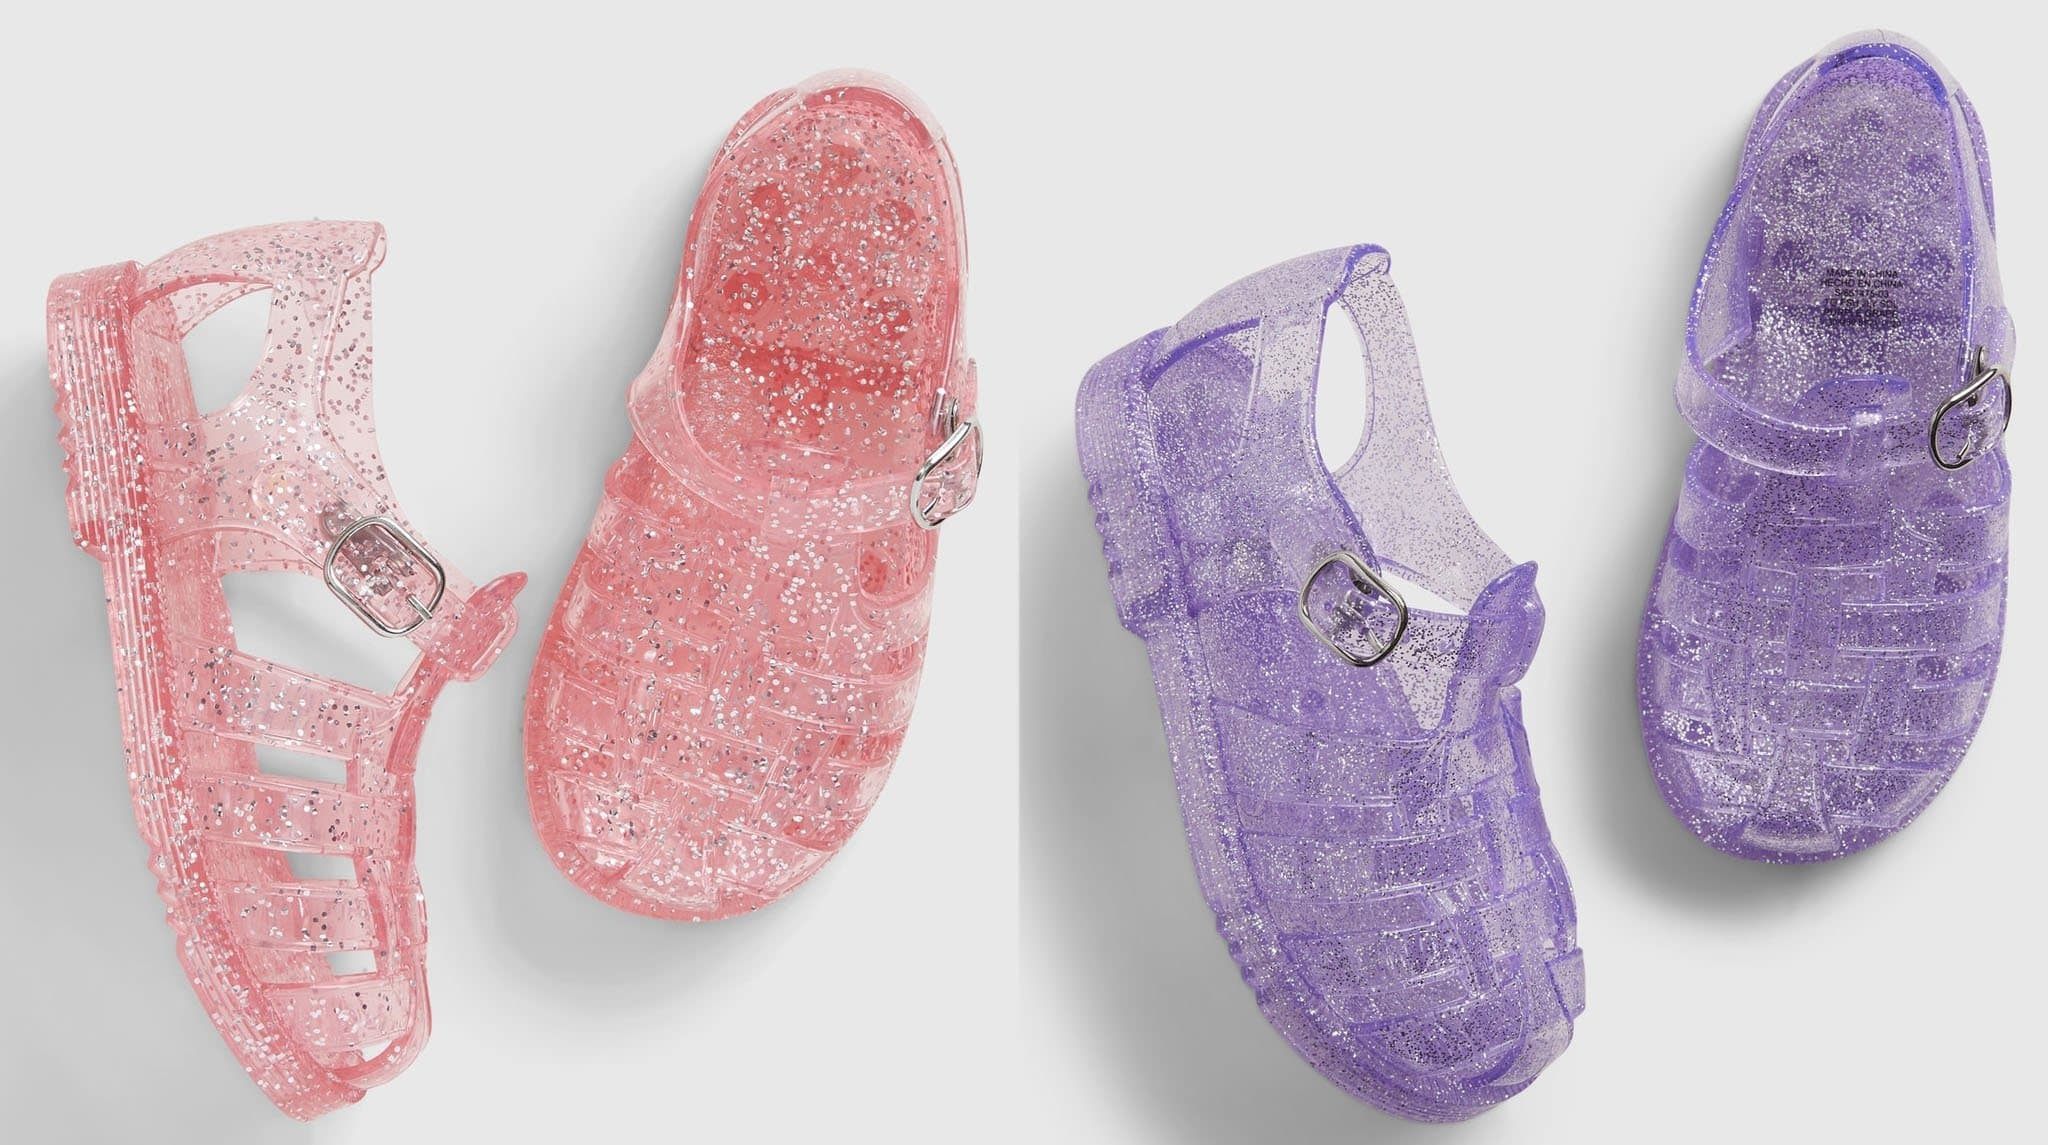 Gap offers classic jelly shoes with round caged toes in several colorways for toddlers